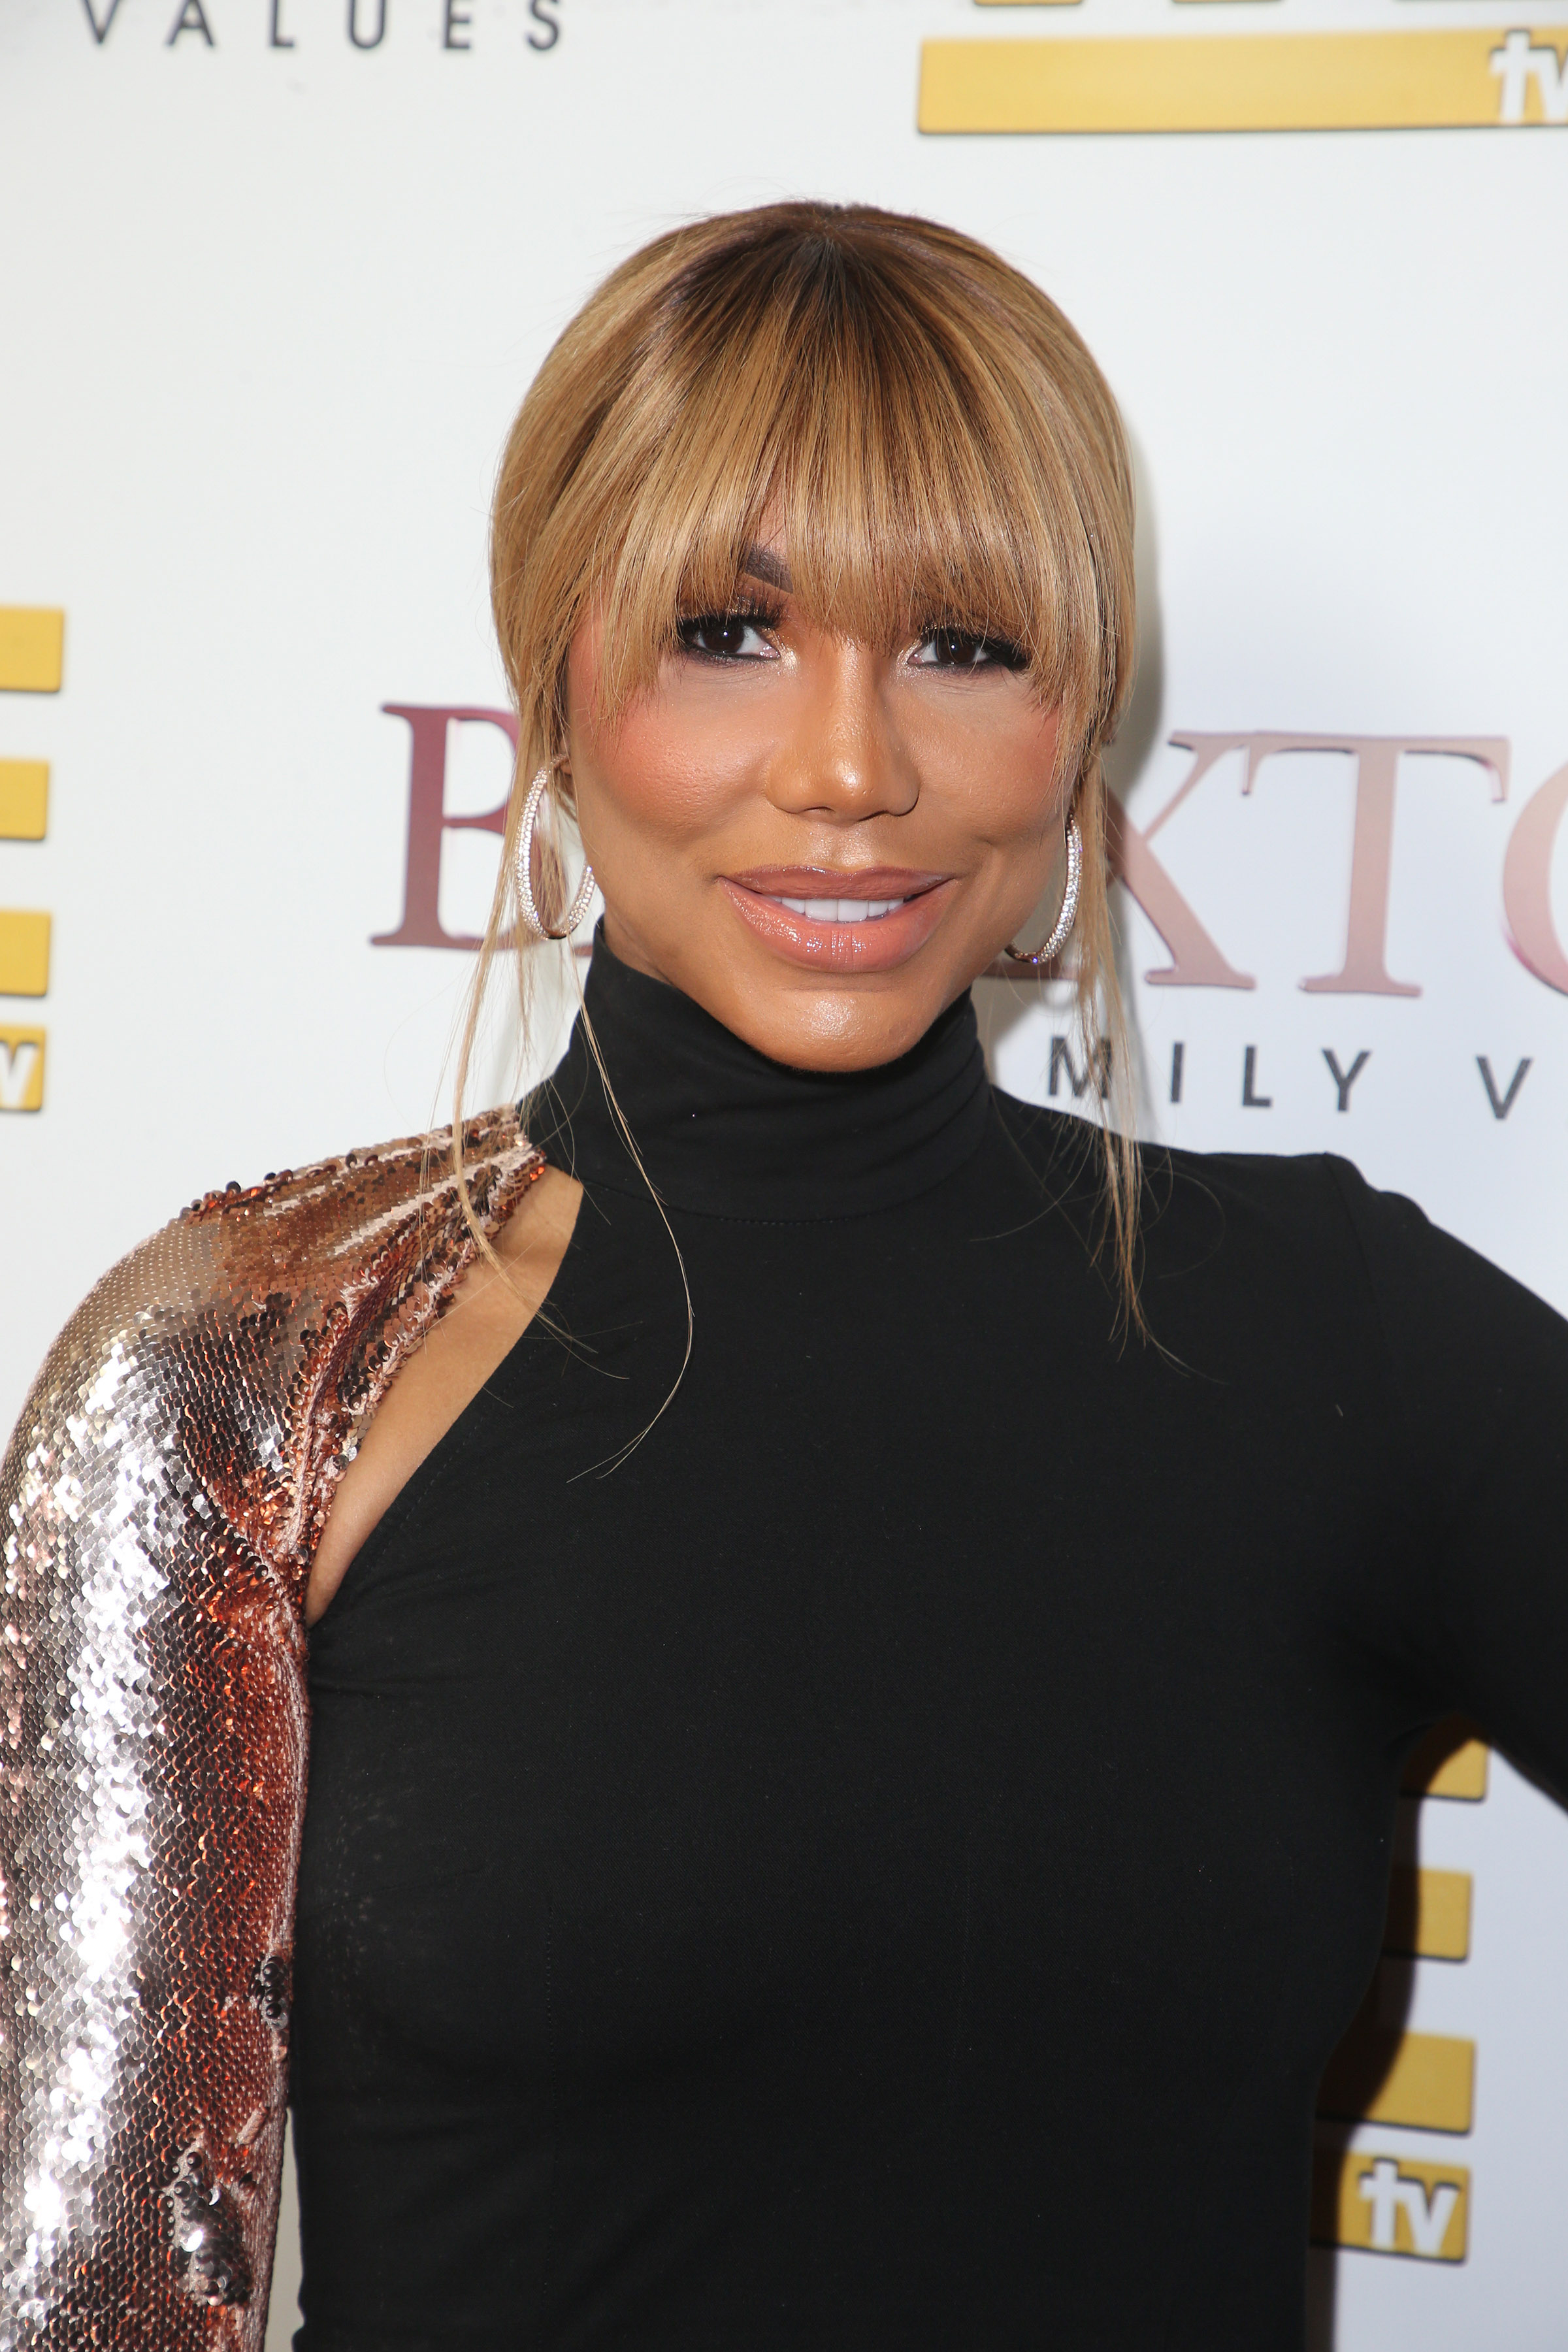 Tamar Shades 'The Real' Cast, They Clap Back!